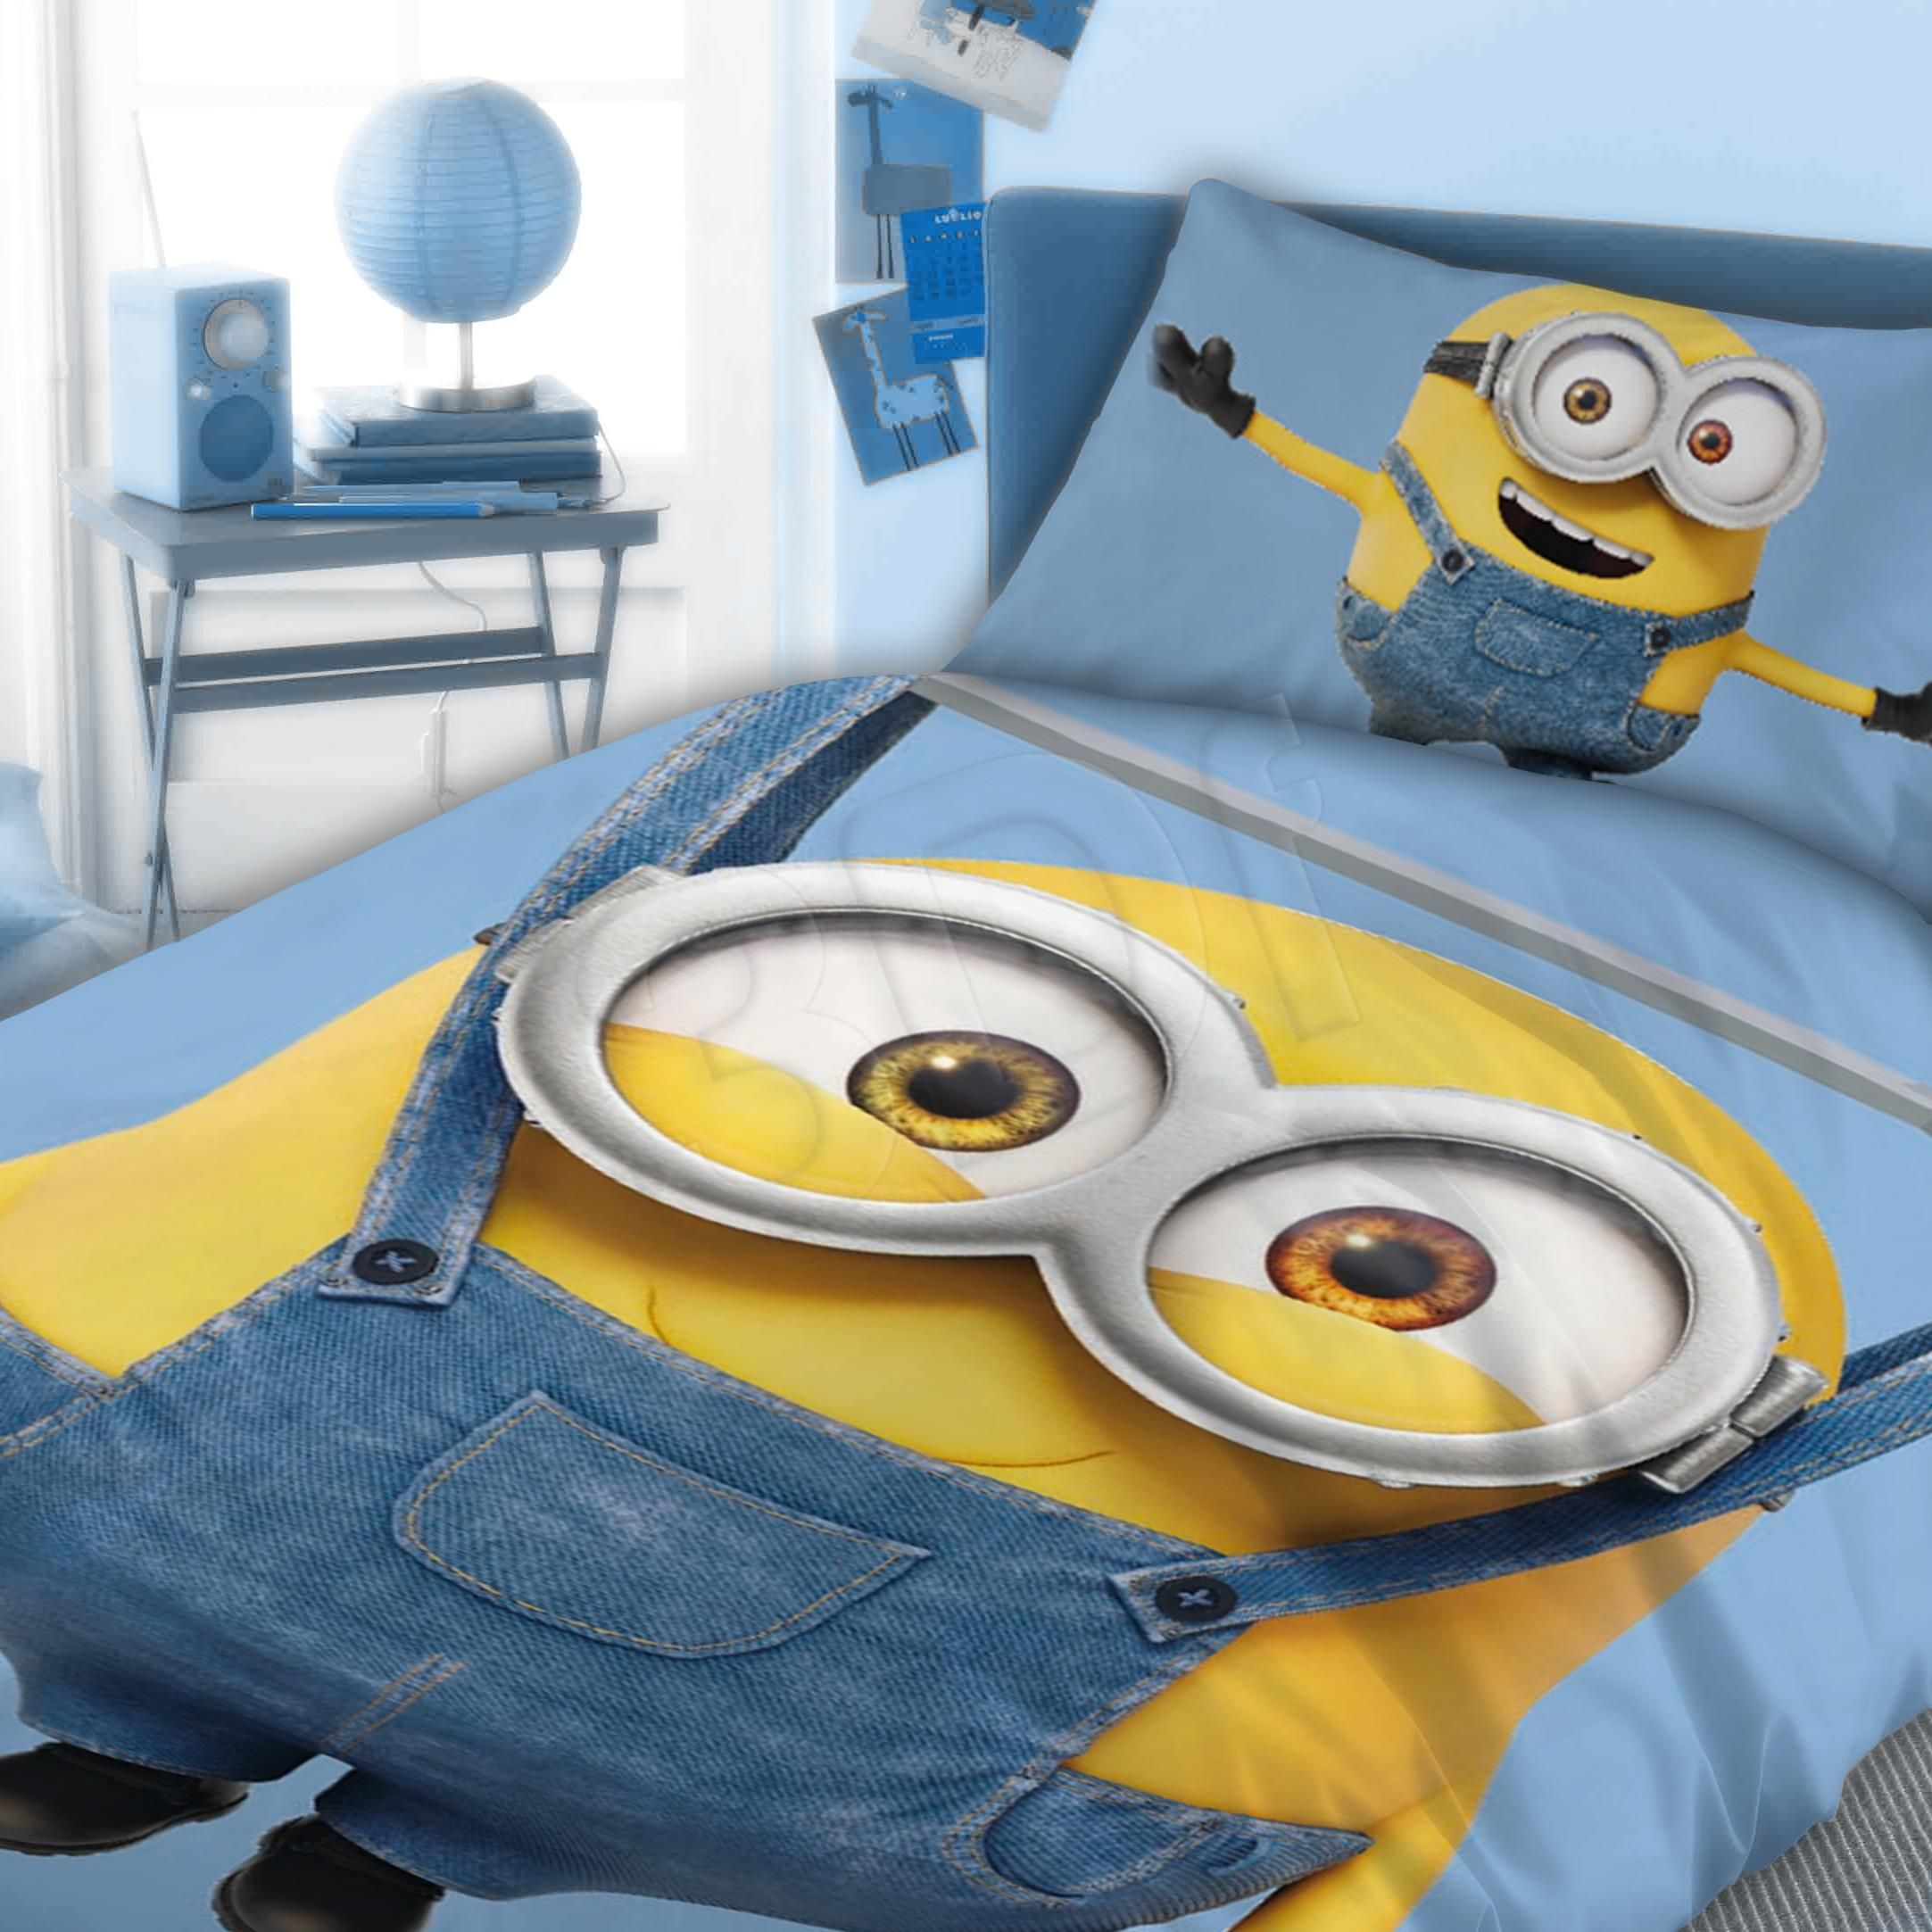 Bed linen Faro  FAO064 (140x200 cm, 70x90 cm; blue color, yellow color) FAO064 Gultas veļa